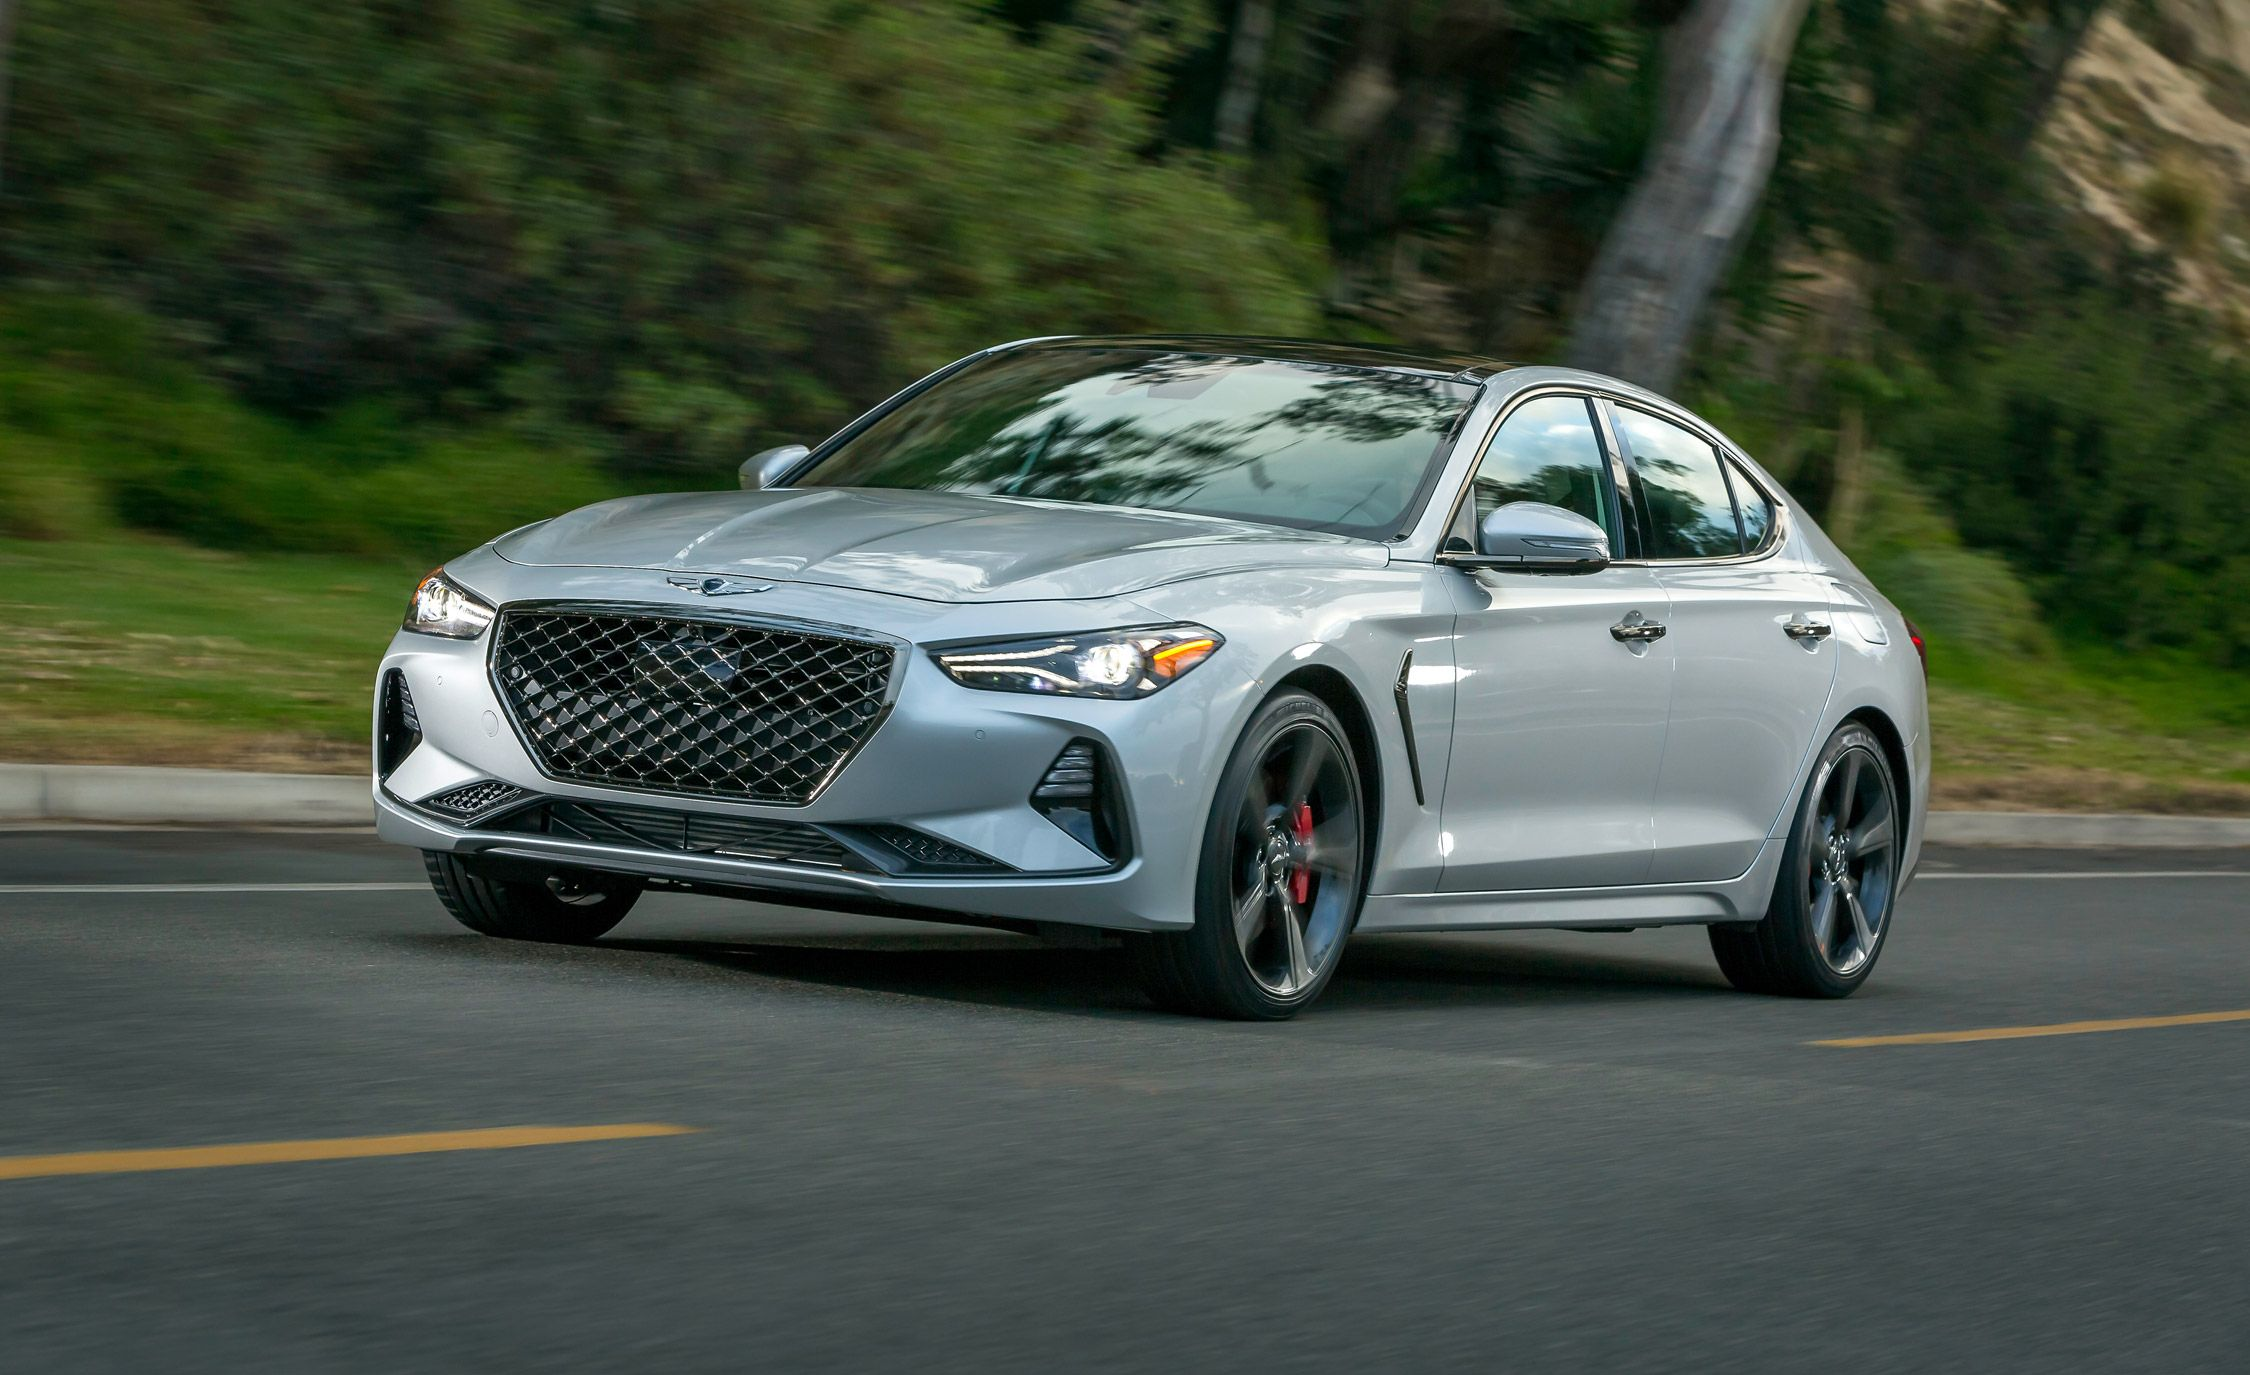 2019 Cadillac Ct8 25 Cars Worth Waiting For: 2019 Genesis G70: A New Brand, A New Car, Maybe A Threat